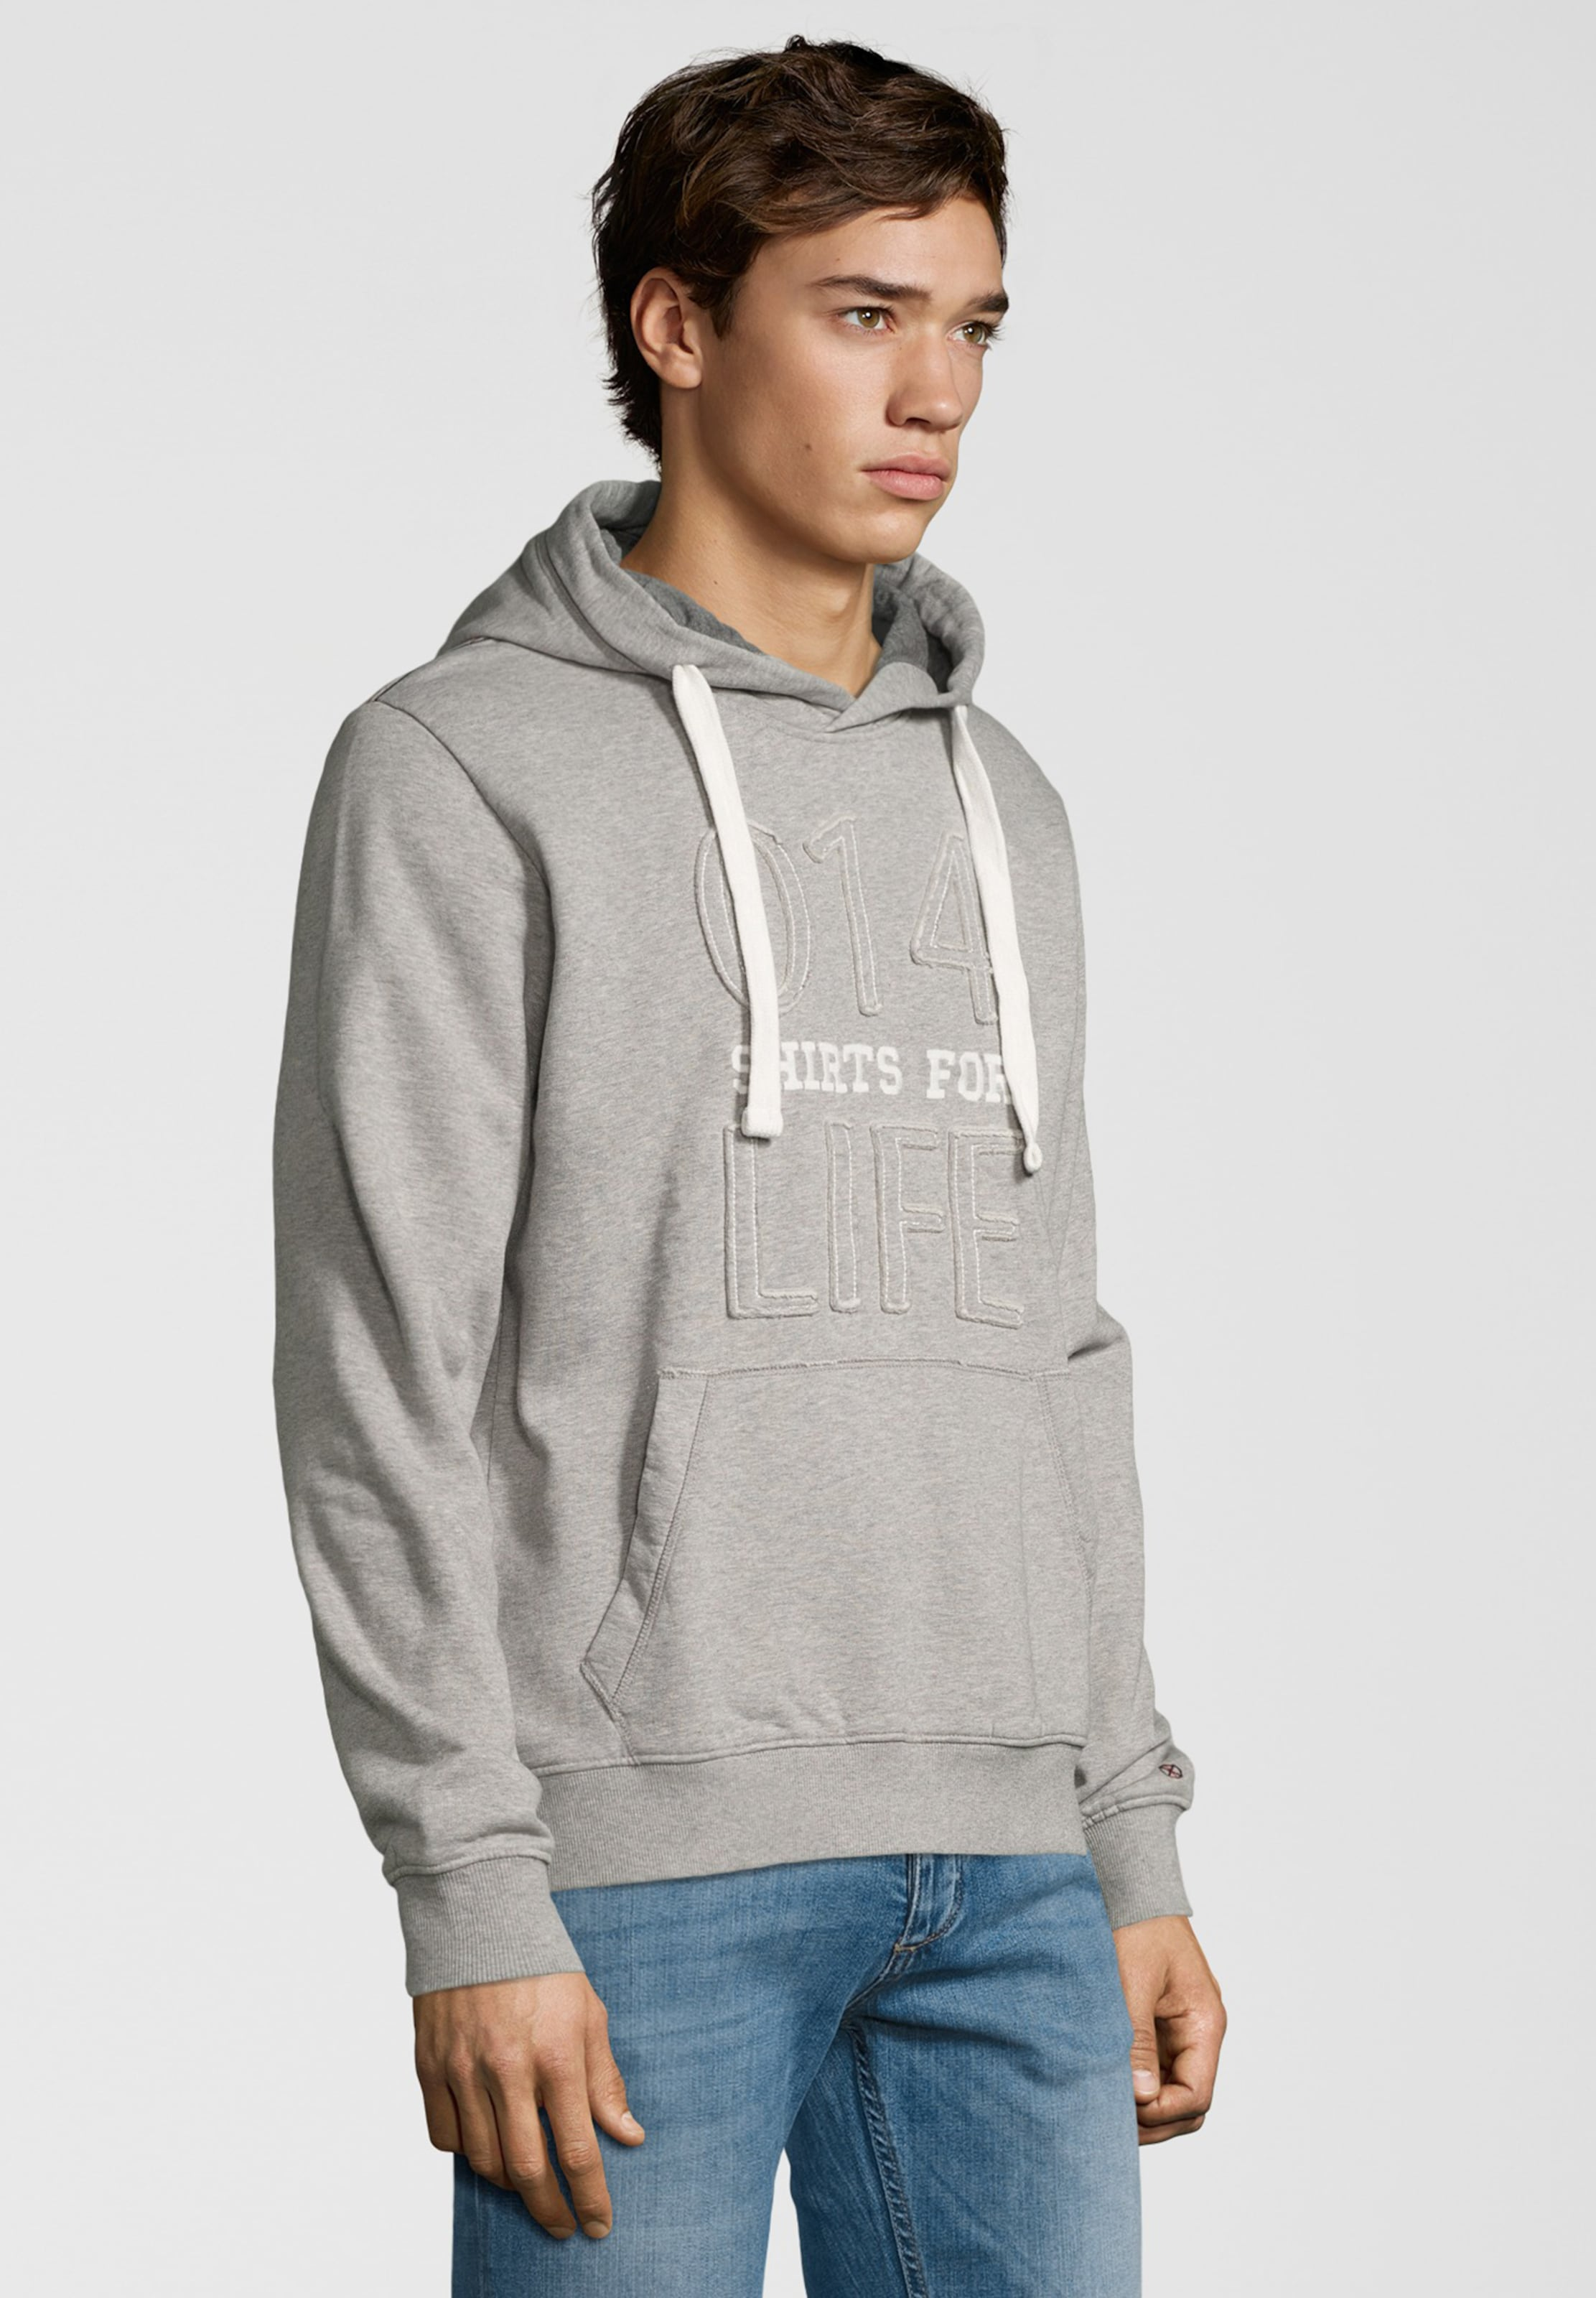 Graumeliert Shirts For Life Hoodie In 'simon' nwNO80PXk